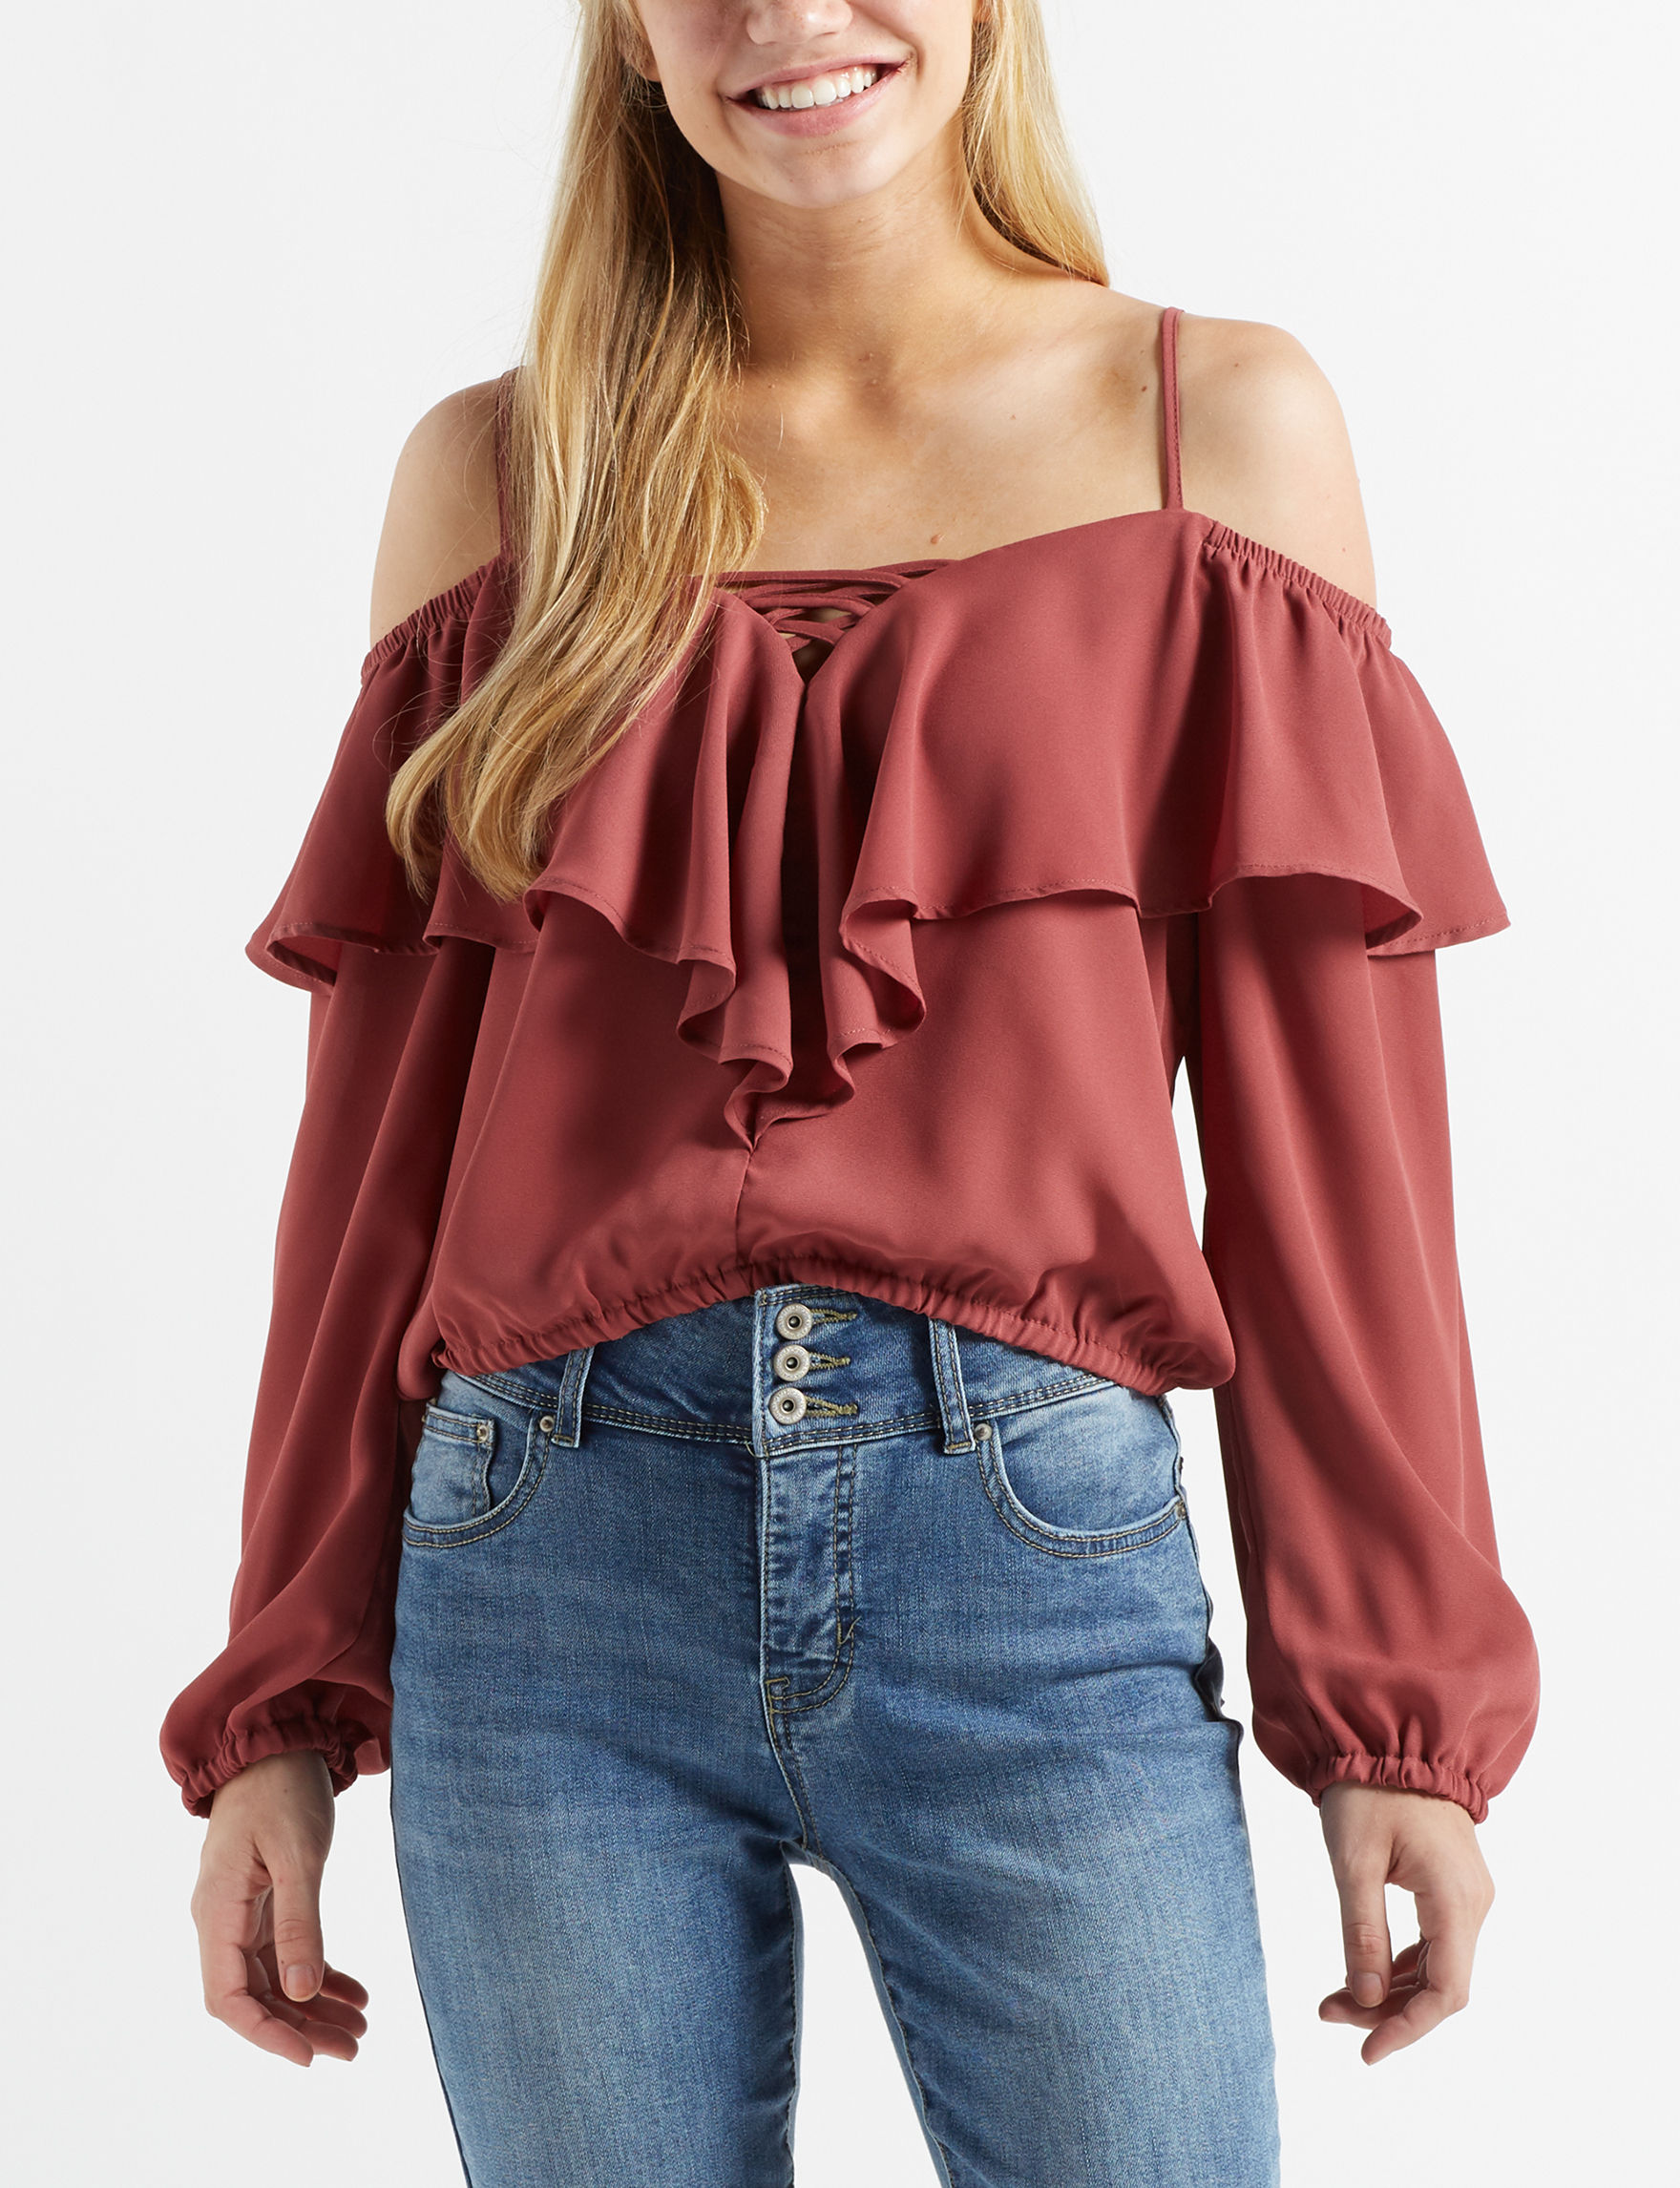 Wishful Park Burgundy Shirts & Blouses